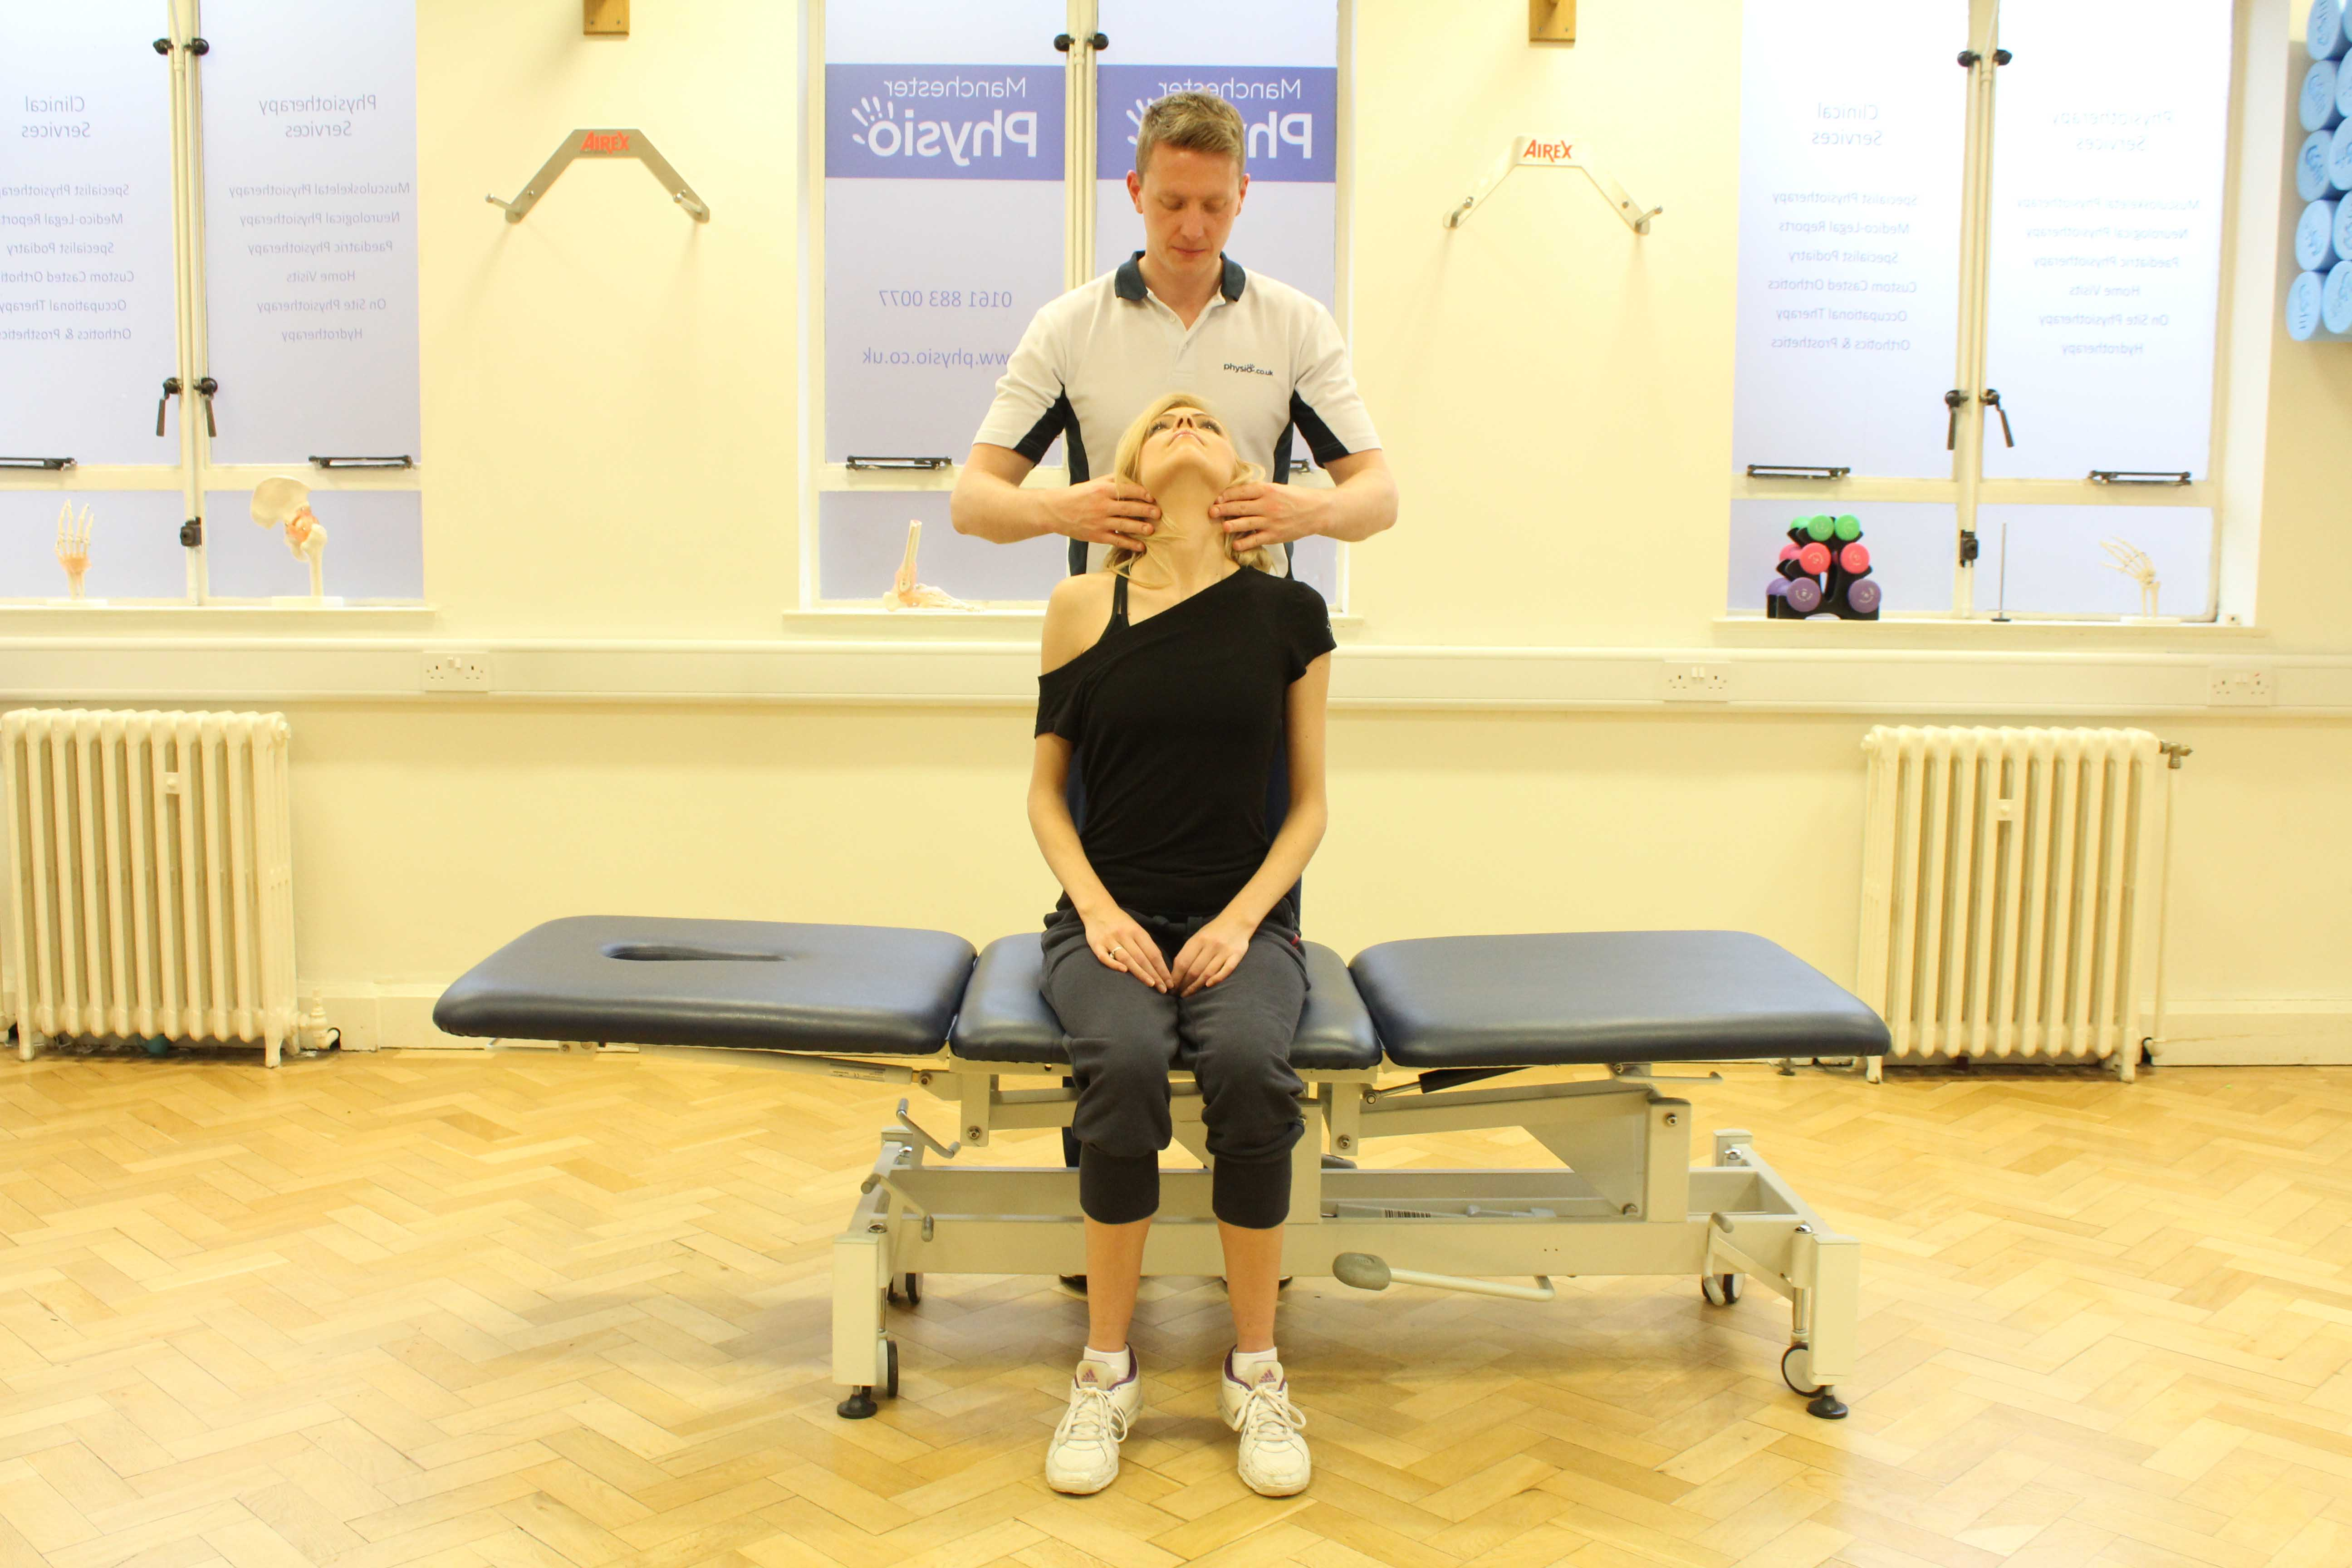 Soft tissue massage of the muscle and connective tissues in the neck by specialist MSK therapist